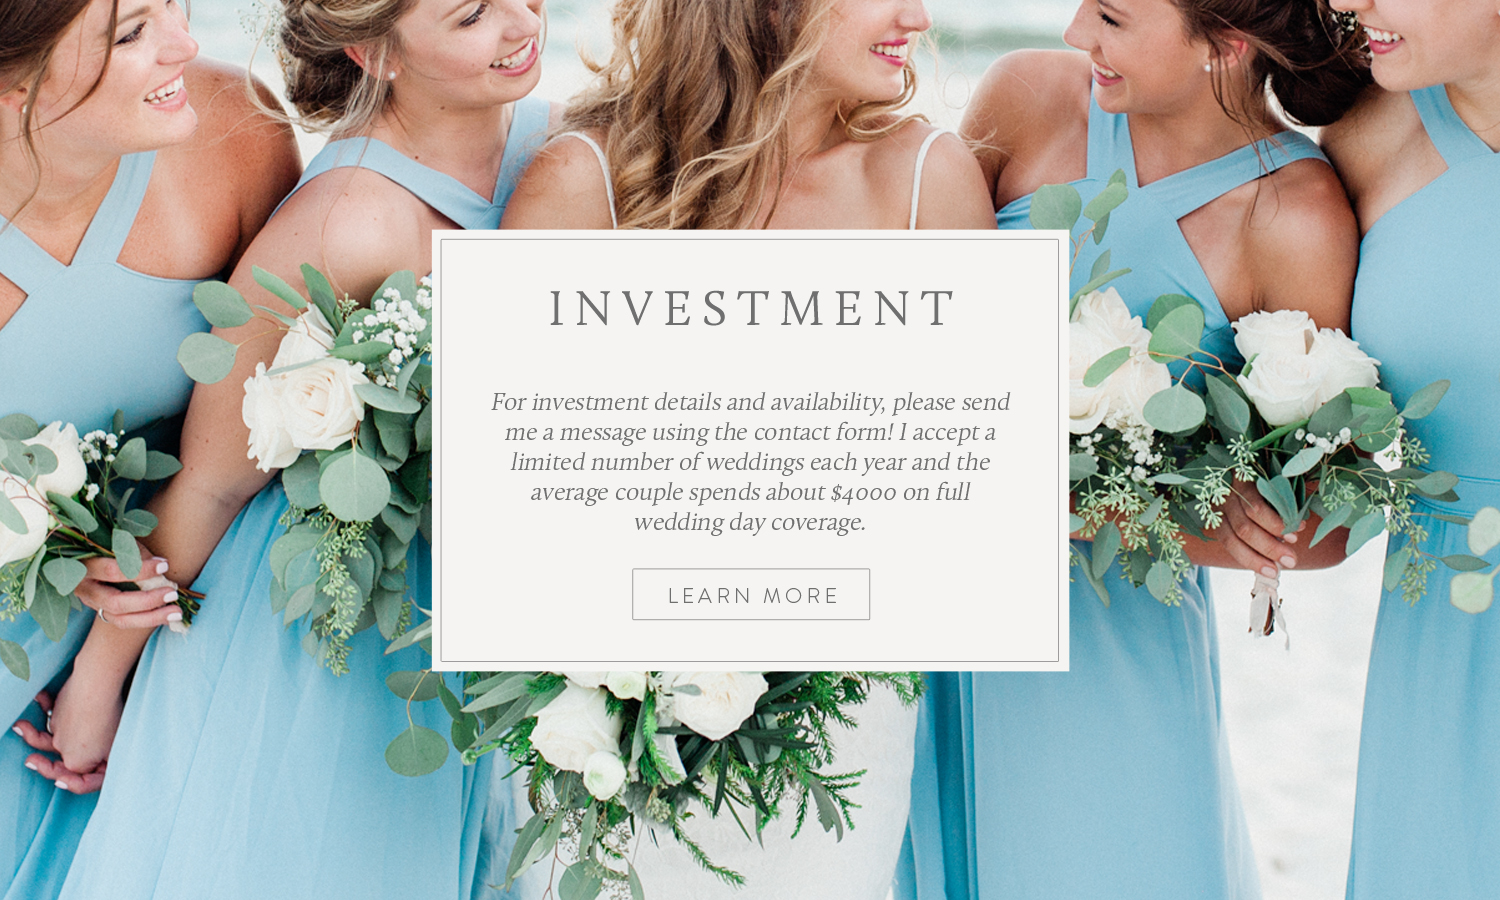 wedding-experience-mississippi-photographer-investment.jpg